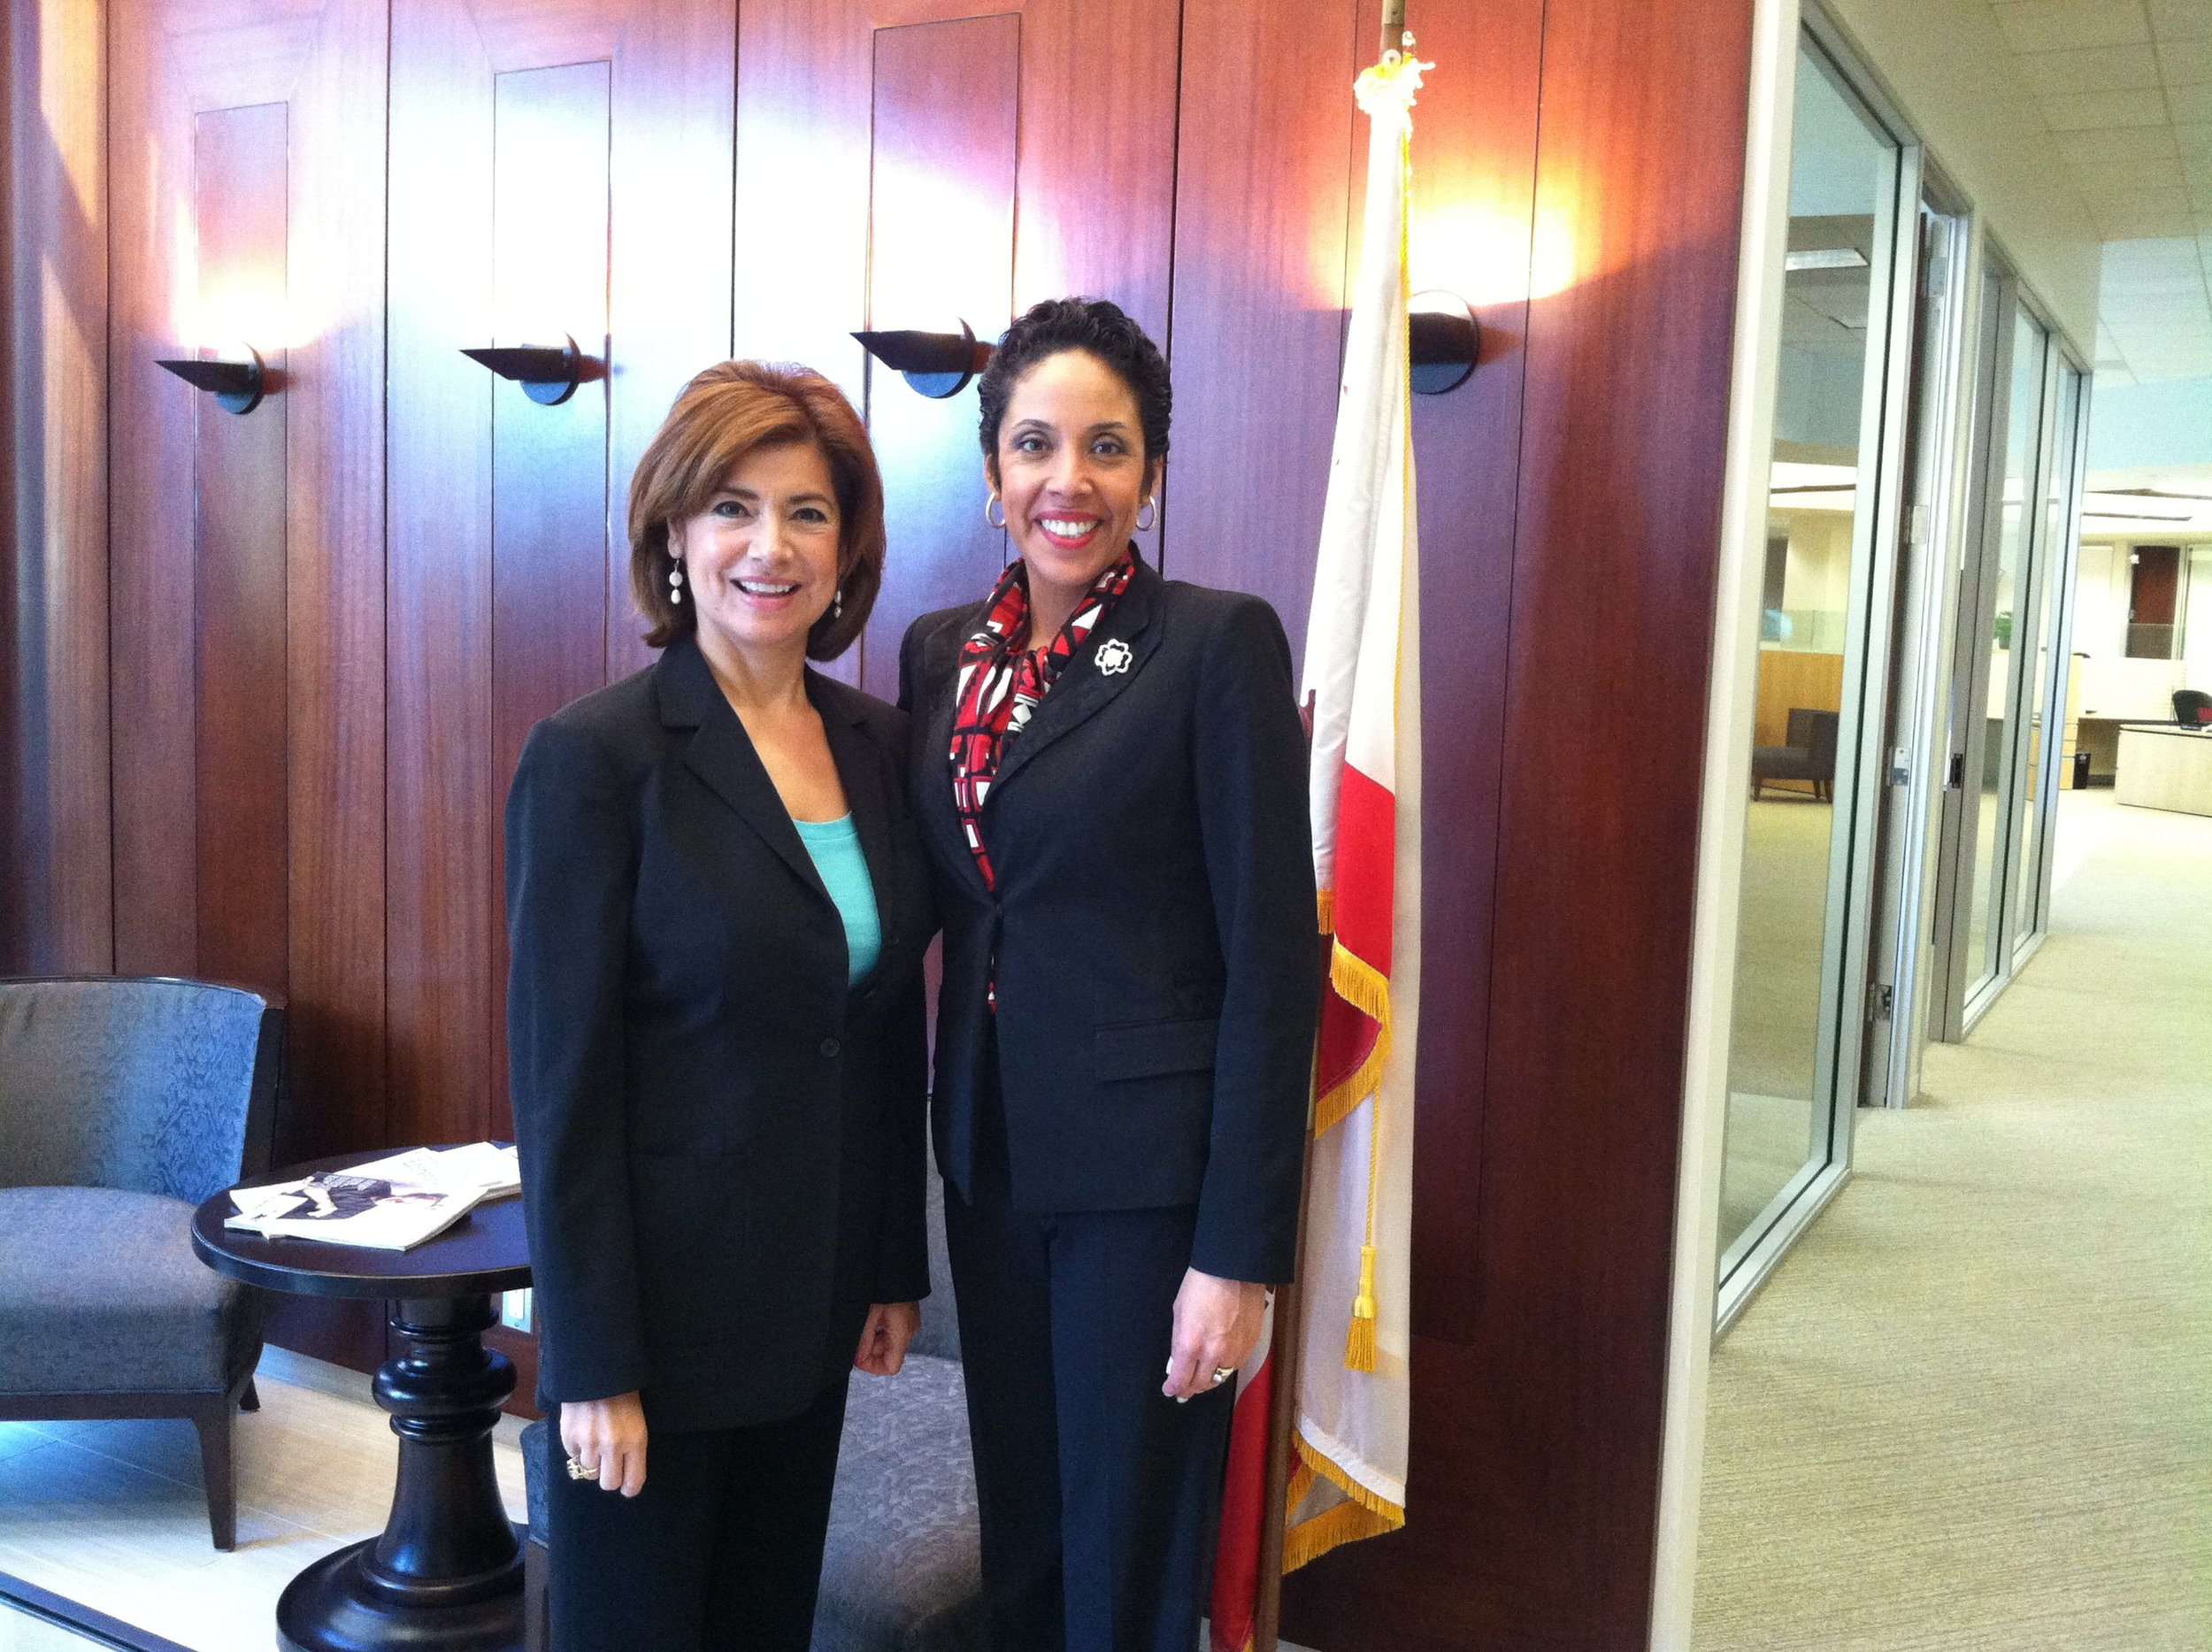 Administrator of the U.S. Small Business Administration Maria Contreras-Sweet with Anna Maria Chávez